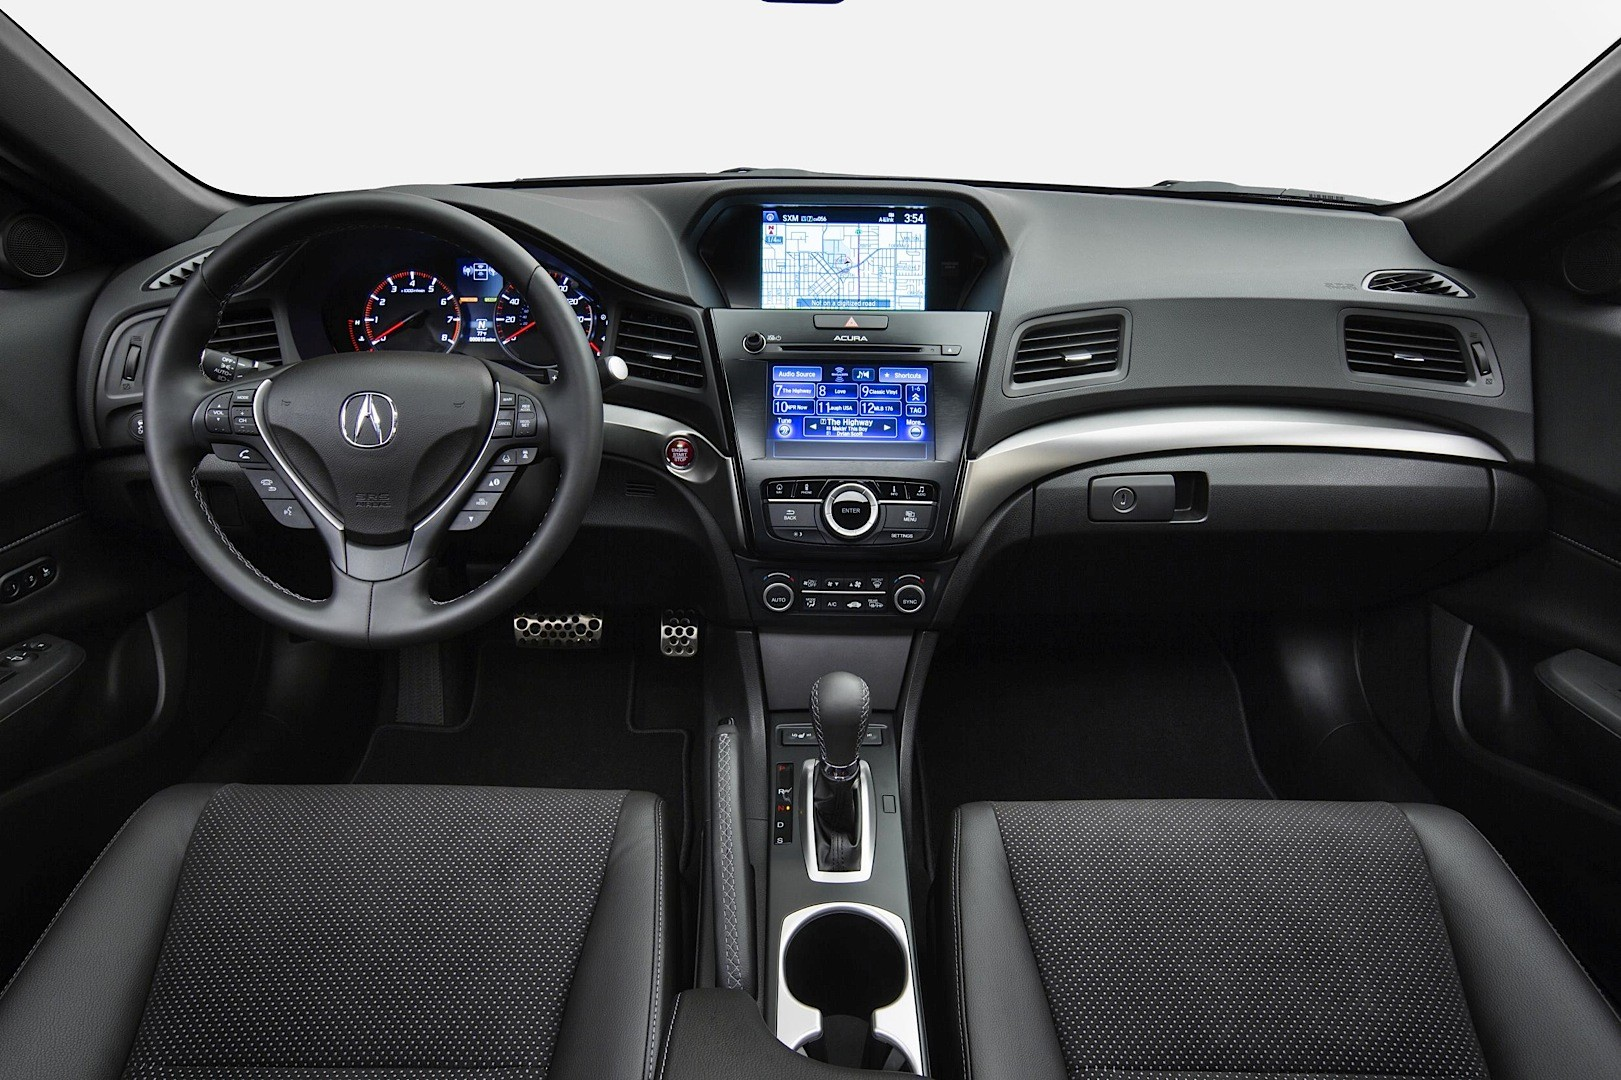 2016 acura ilx revealed with standard 2 4l and 8 speed twin clutch gearbox live photos. Black Bedroom Furniture Sets. Home Design Ideas